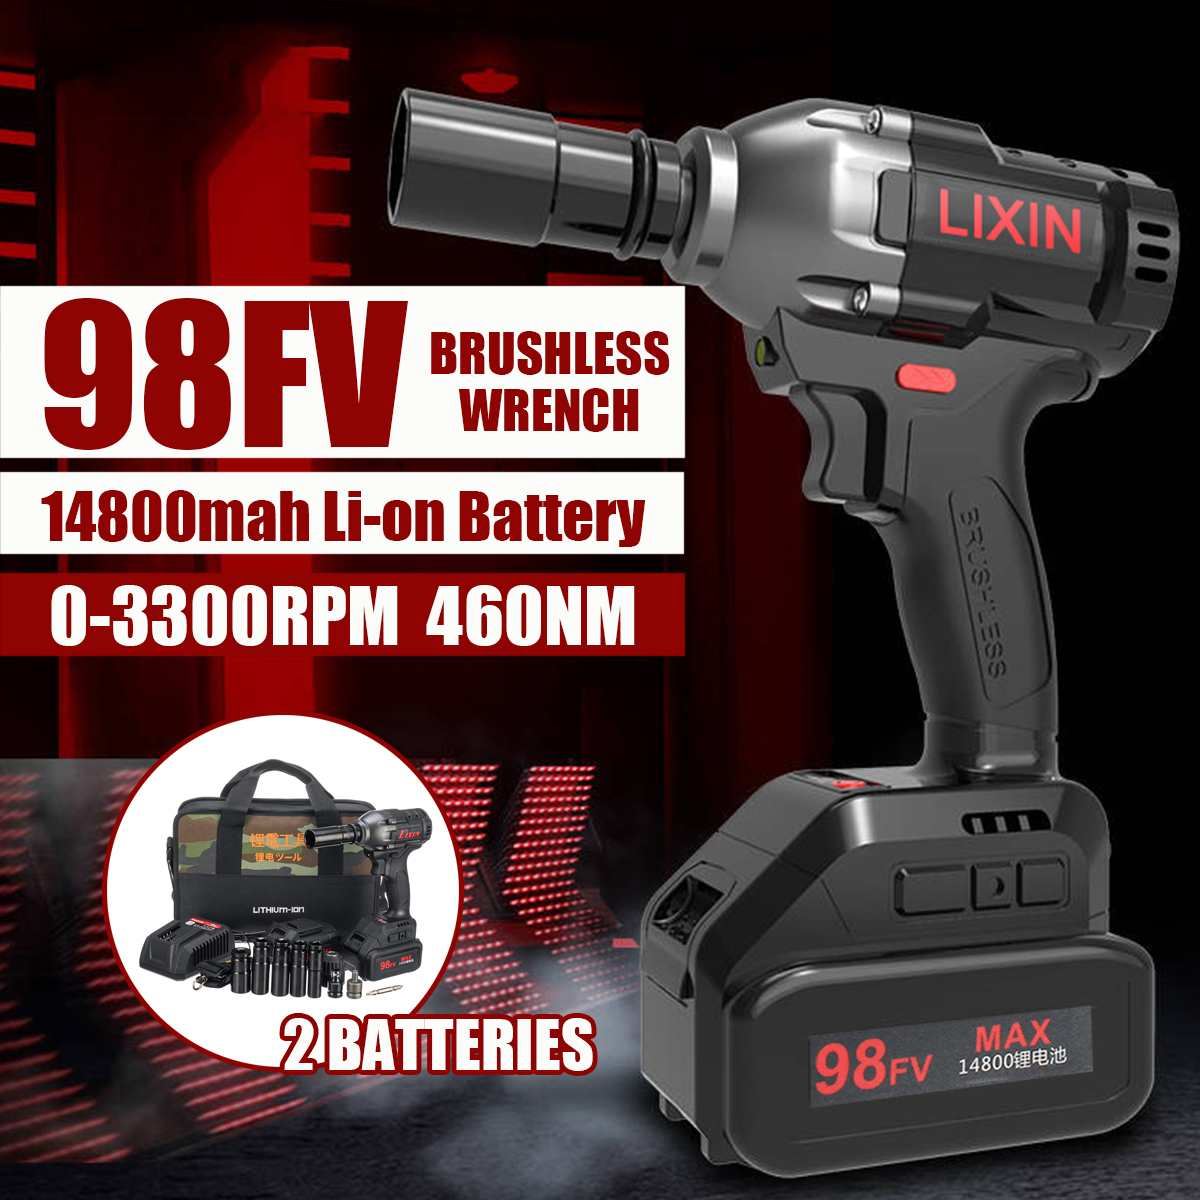 98VF Cordless Electric Wrench Impact Socket Drill Electric Screwdriver Rechargeable Li-on Battery Hand Drill Install Power Tools98VF Cordless Electric Wrench Impact Socket Drill Electric Screwdriver Rechargeable Li-on Battery Hand Drill Install Power Tools